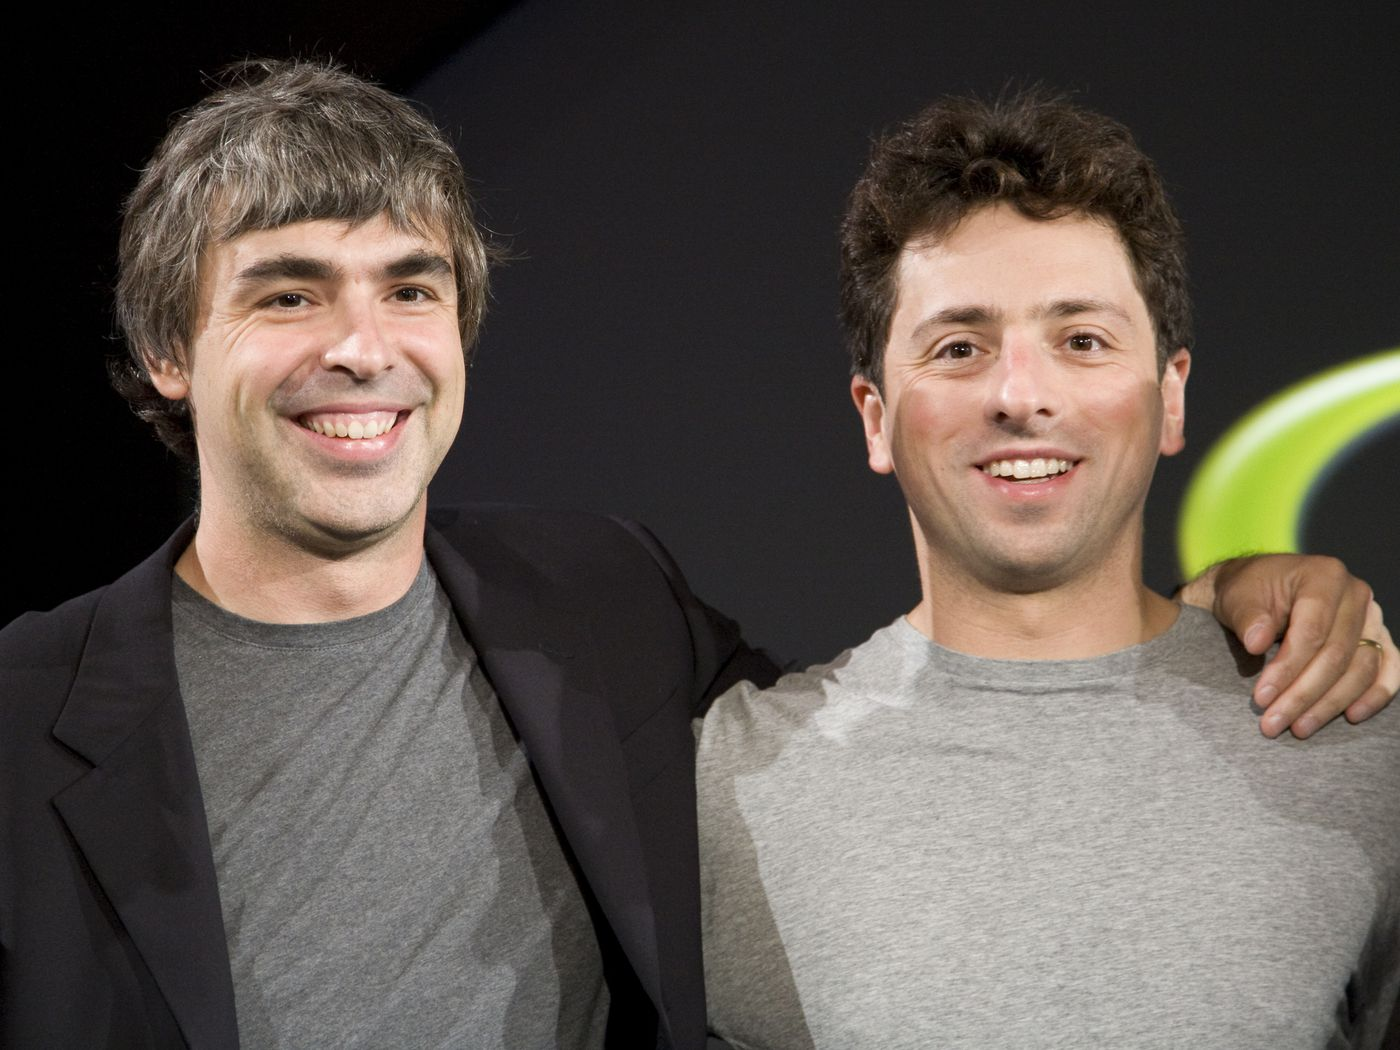 Google co-founders Larry Page and Sergey Brin: a timeline of their rise anddisappearance - The Verge